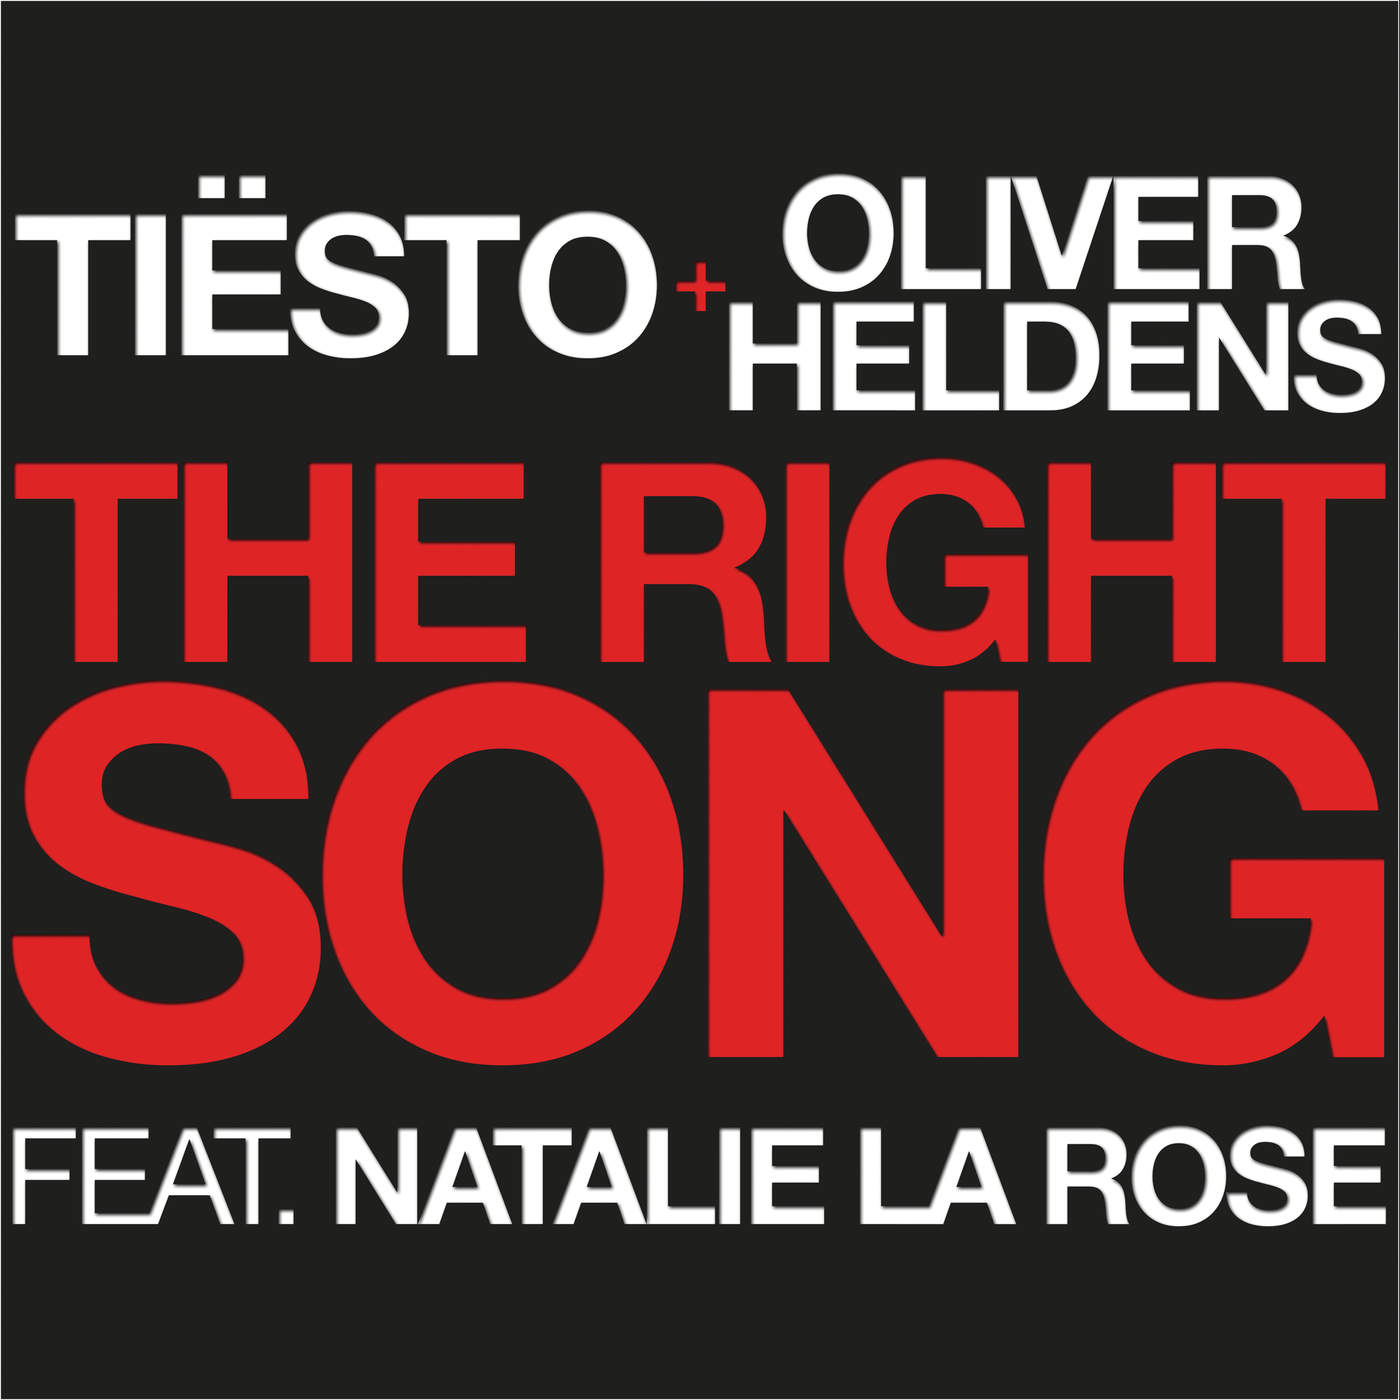 Tiësto & Oliver Heldens - The Right Song (feat. Natalie La Rose) - Single Cover